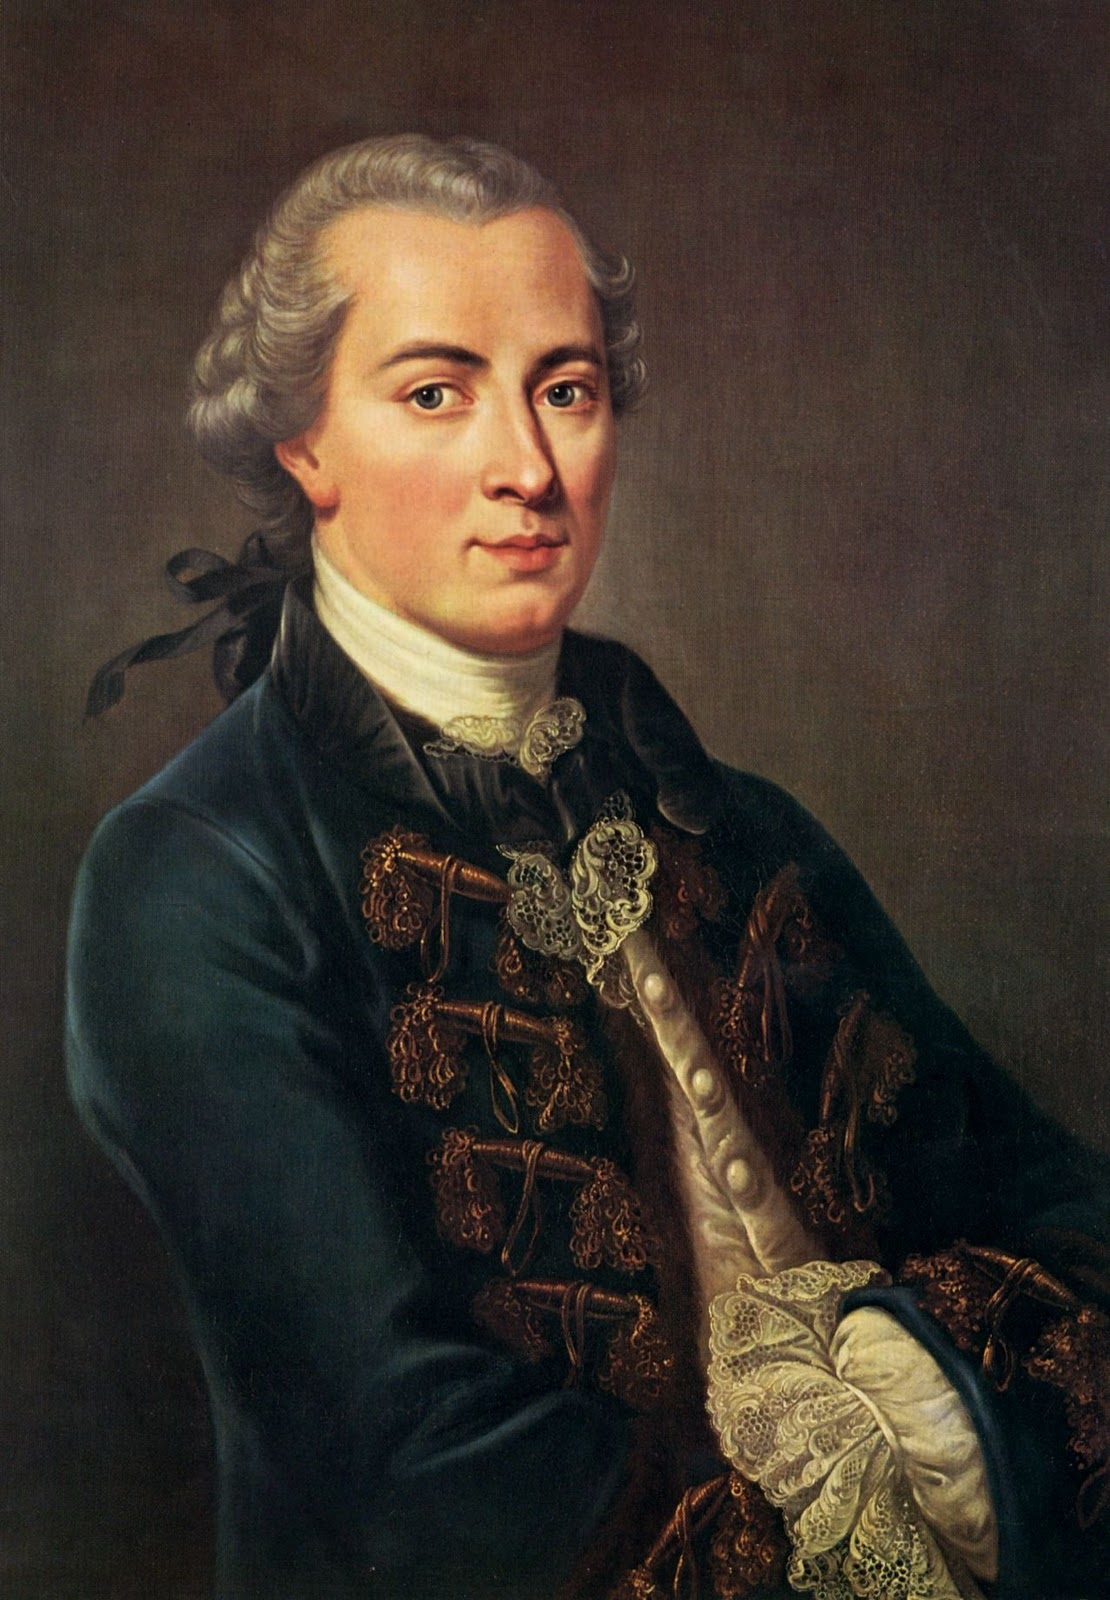 file friedrich heinrich jacobi portrait jpg  file friedrich heinrich jacobi portrait jpg